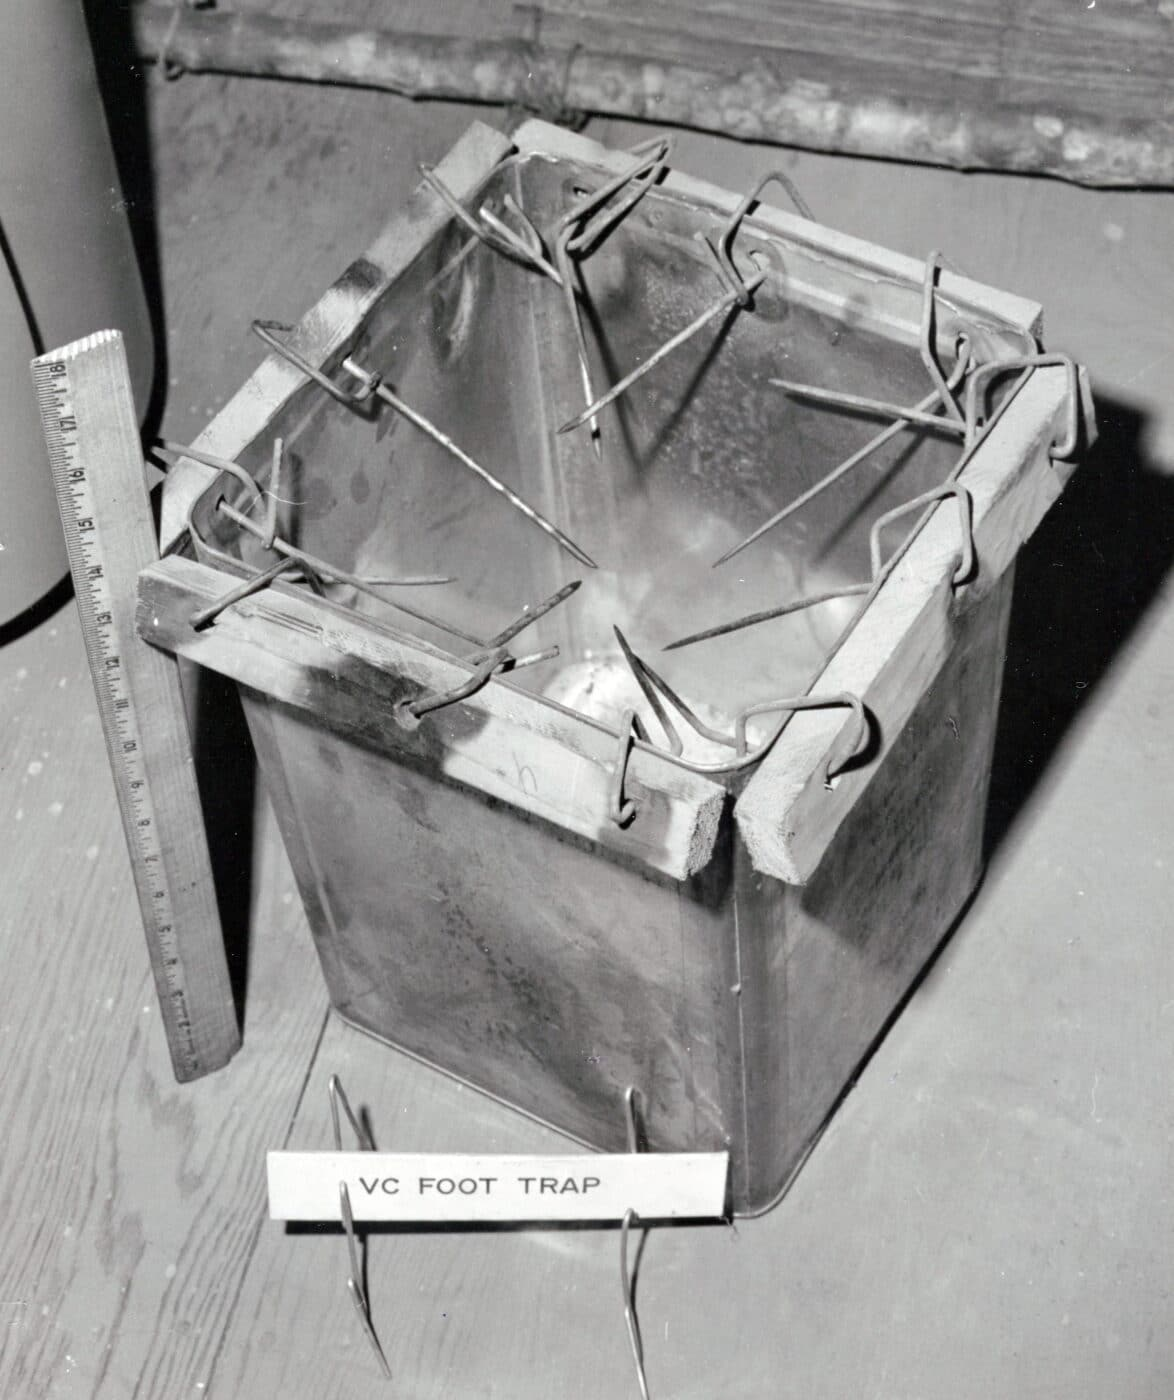 Prefabricated Viet Cong foot trap